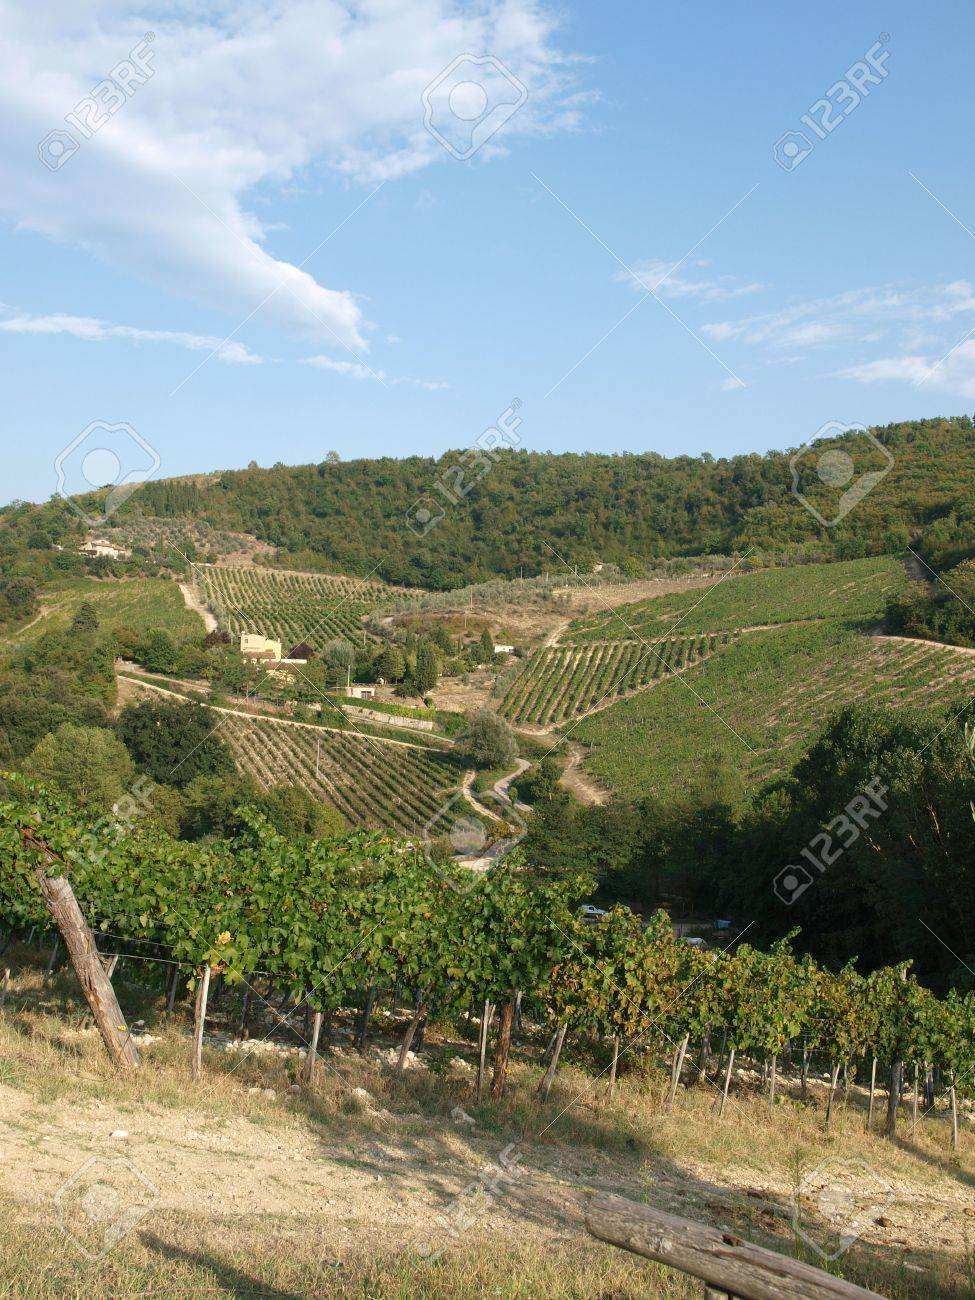 Vineyards and olive fields in Chianti, Tuscany Stock Photo - 6837865